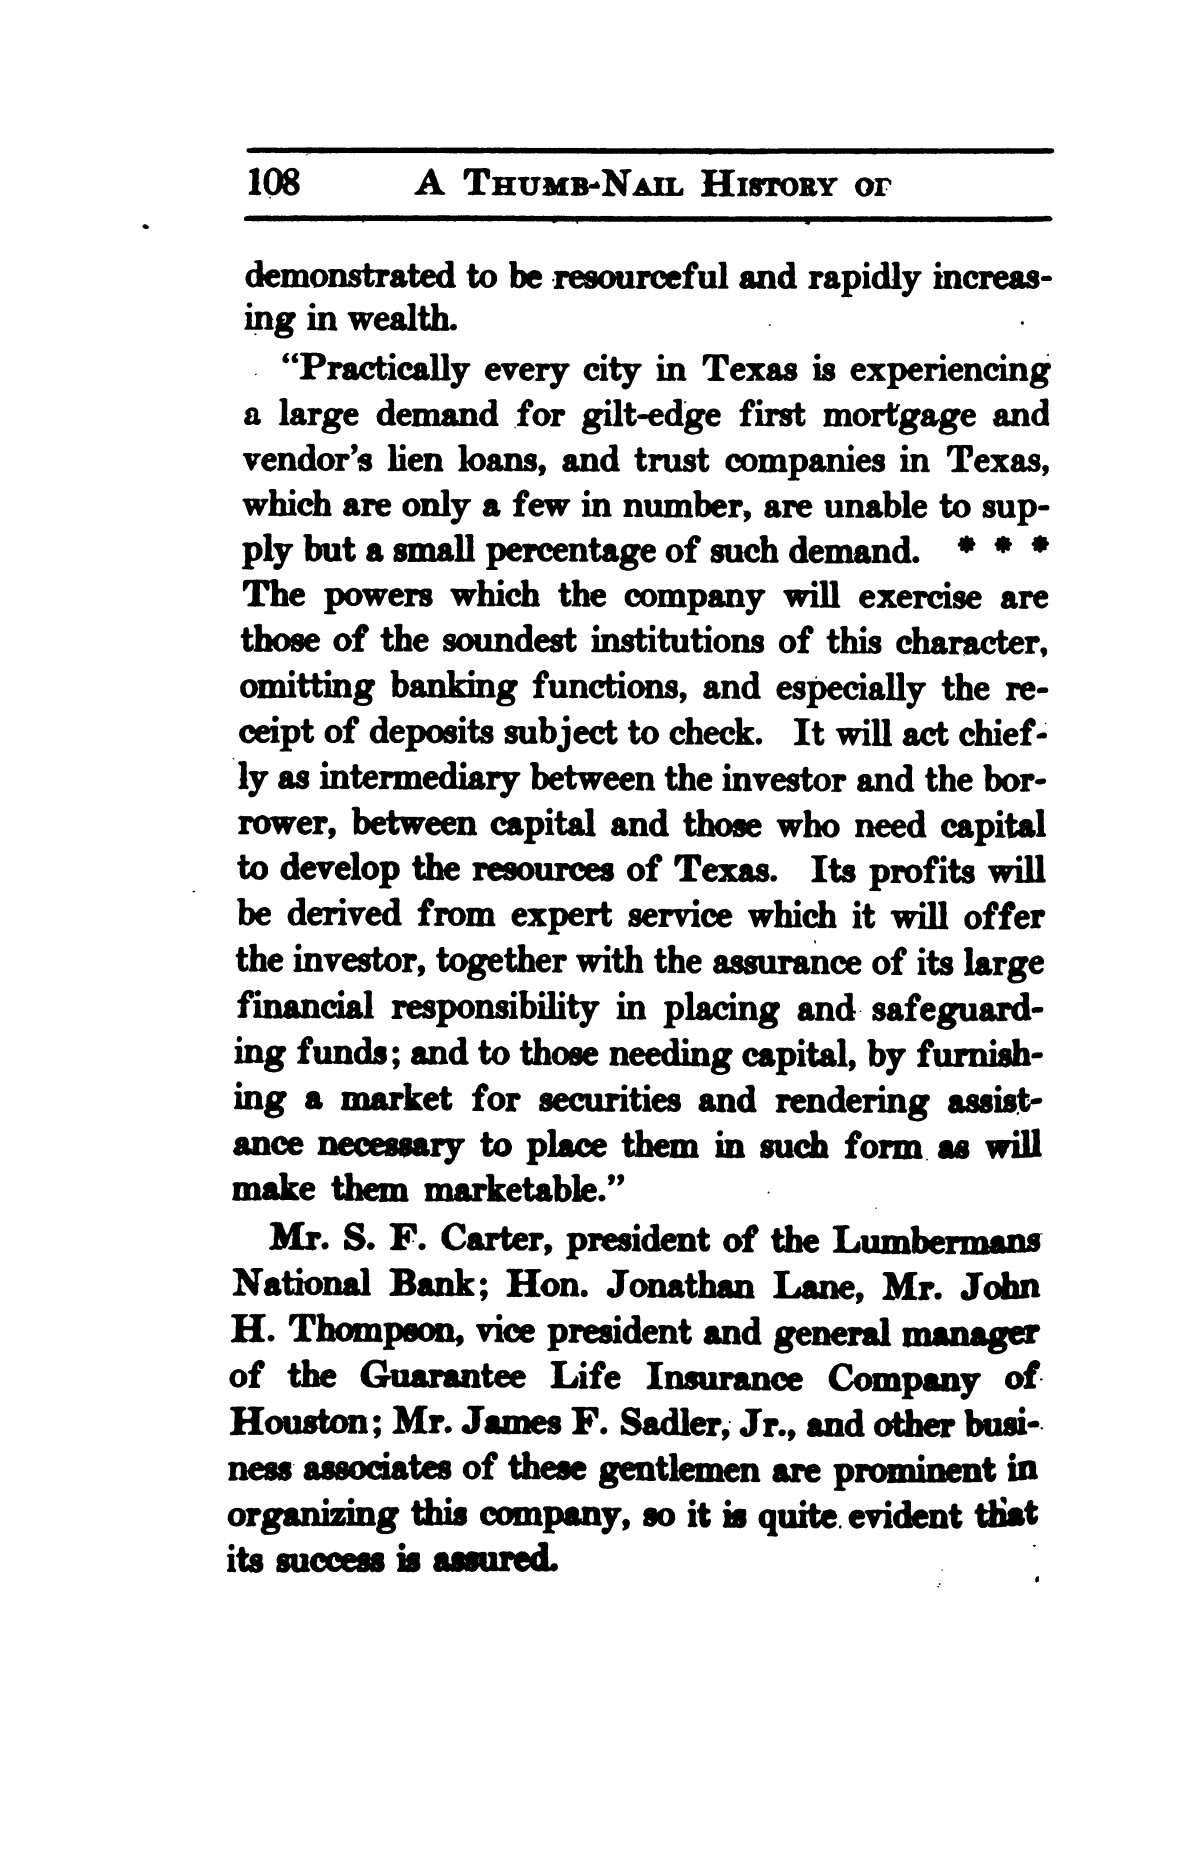 A thumb-nail history of the city of Houston, Texas, from its founding in 1836 to the year 1912                                                                                                      108